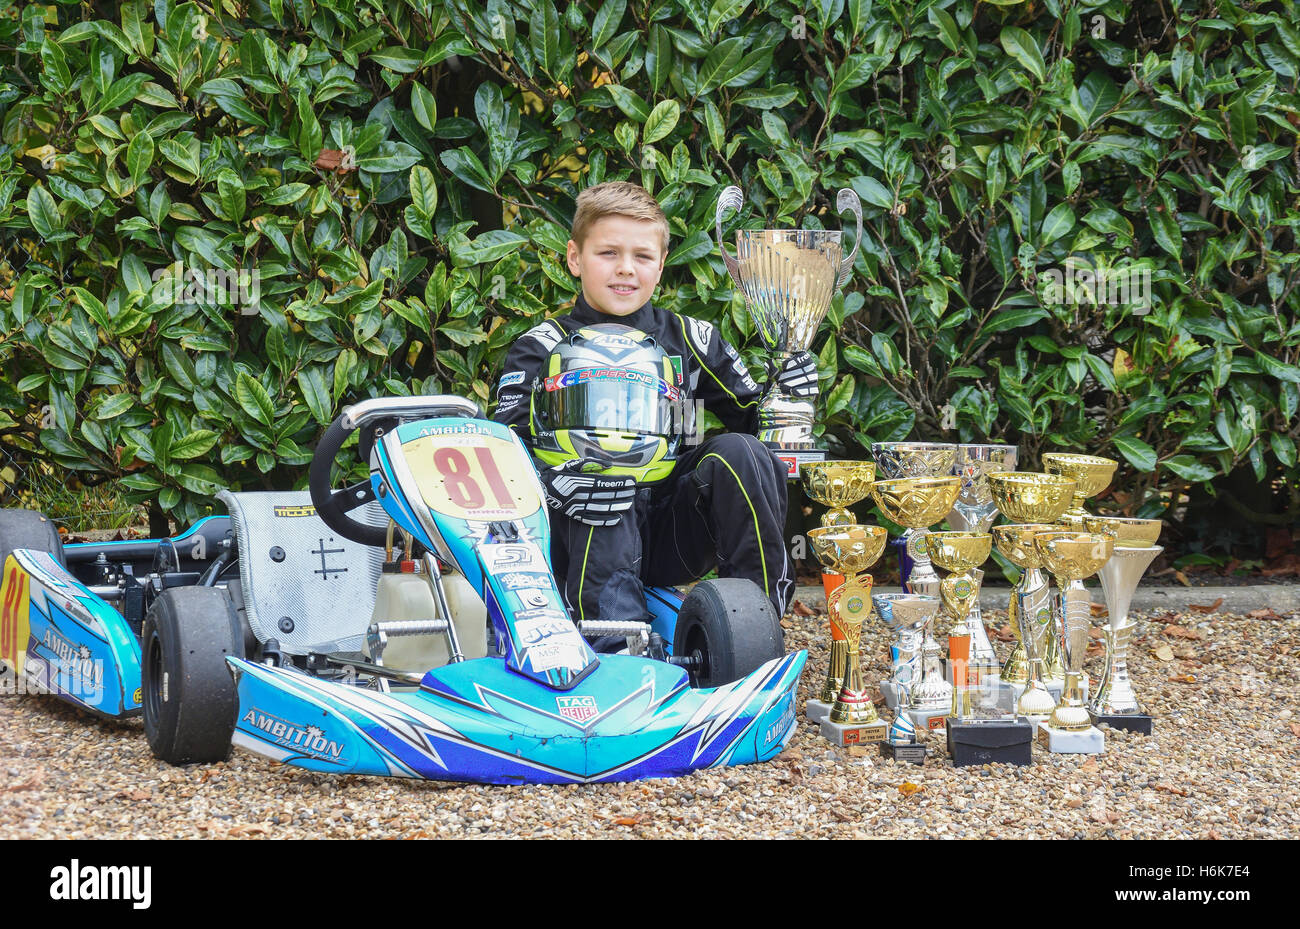 Young boy kart racer with racing trophies, Staines-upon-Thames, Surrey, England, United KingdomStaines-upon-Thames, - Stock Image